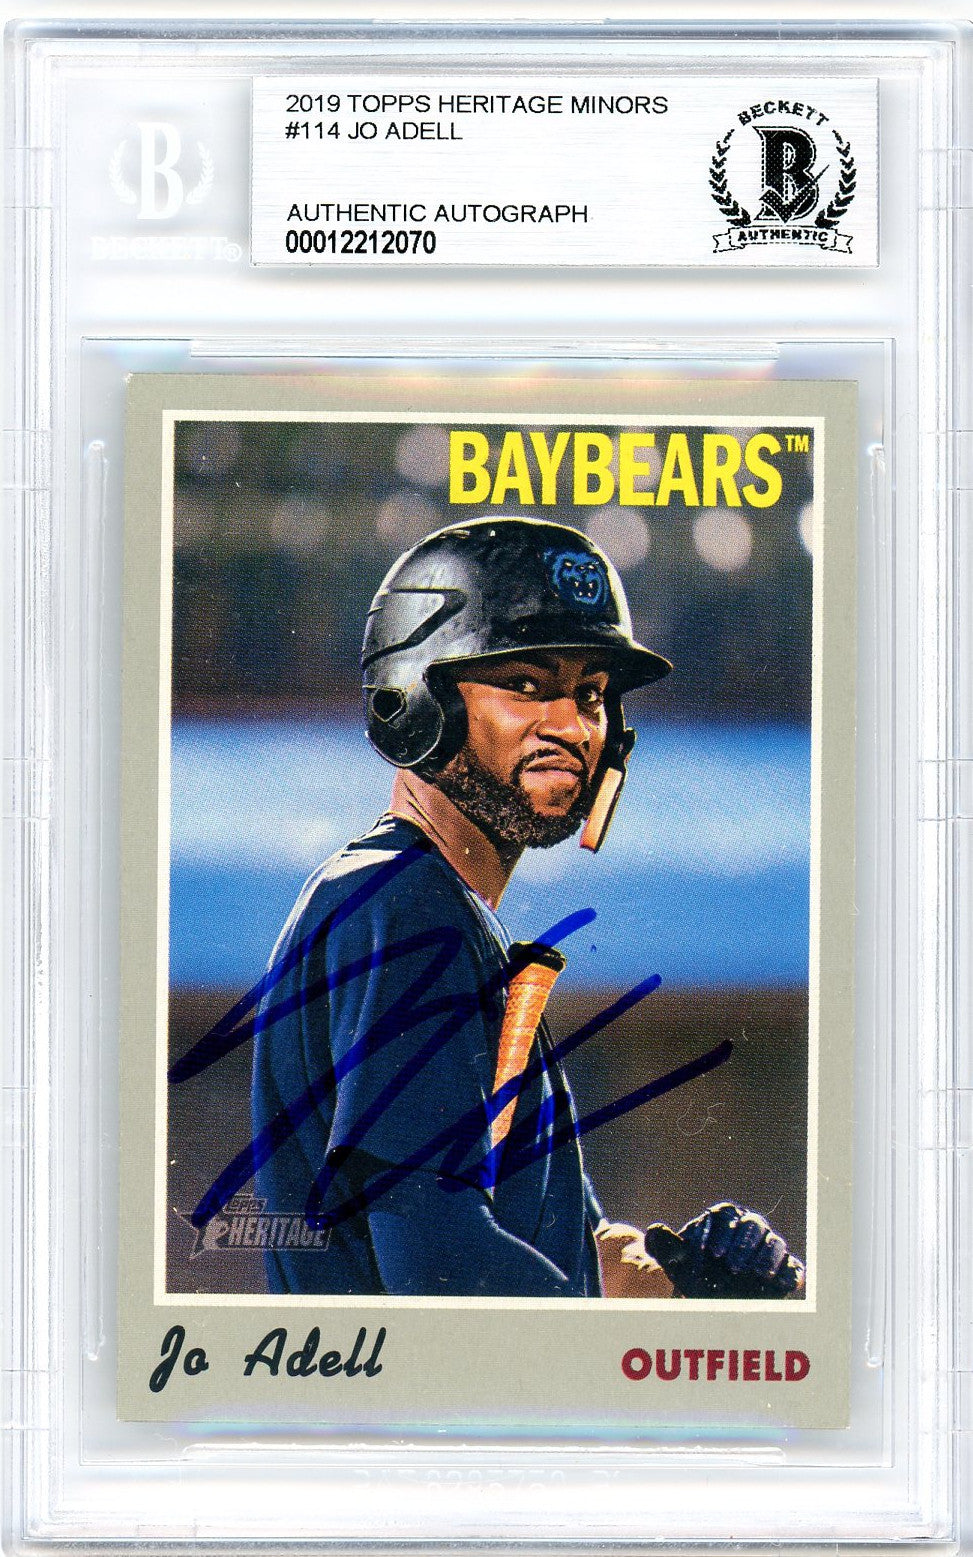 Jo Adell Los Angeles Angels Autographed 2019 Topps Heritage Minors Baseball Rookie Card RC #114 Beckett BAS Authenticated-Powers Sports Memorabilia